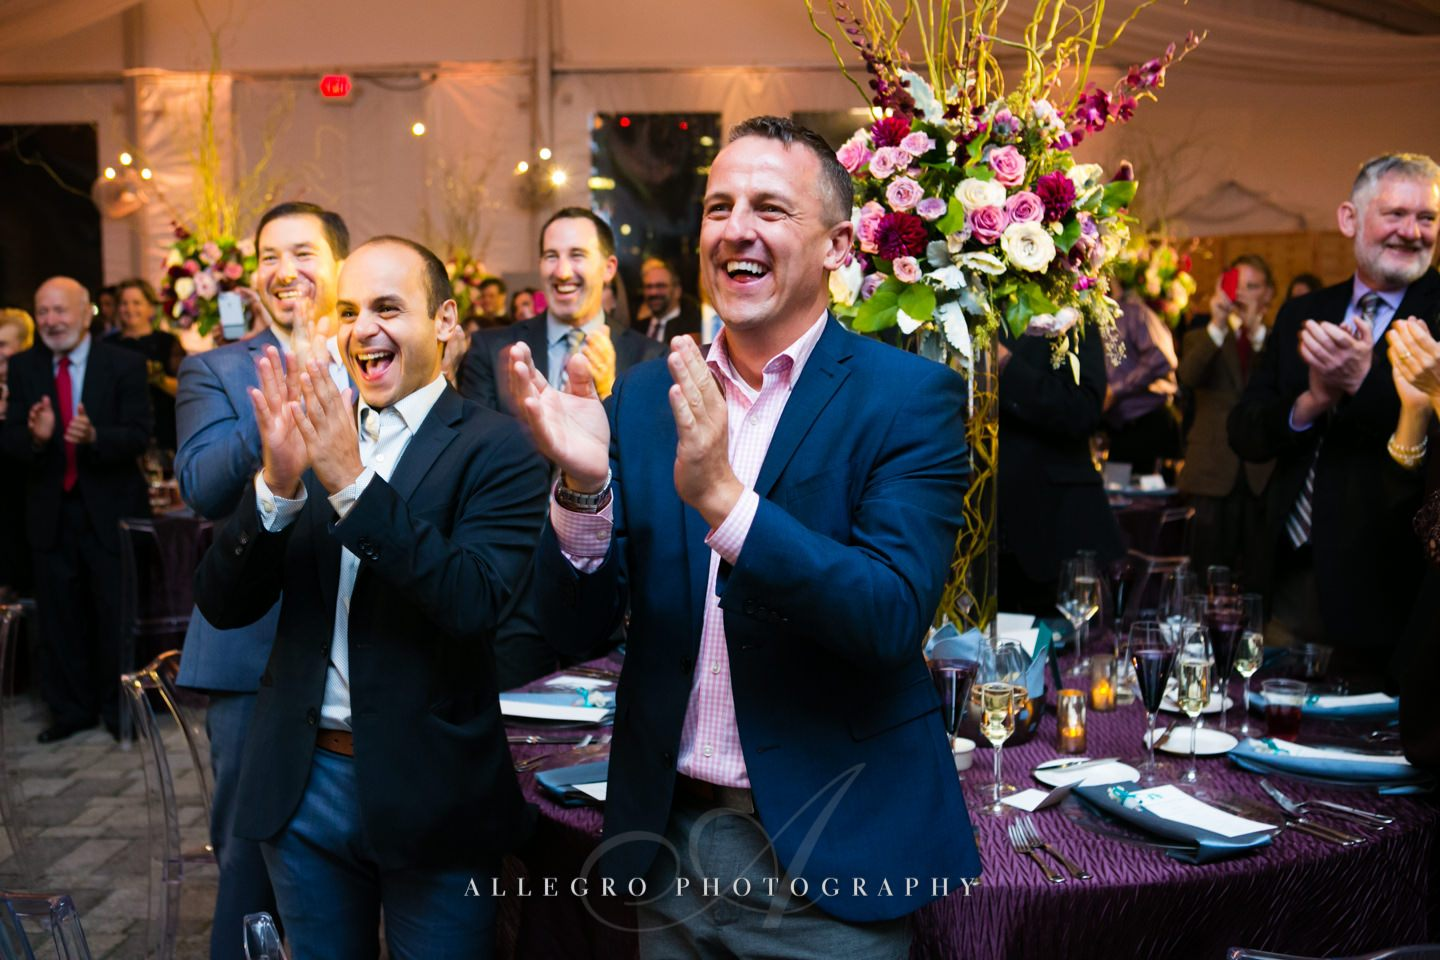 guests - photo by Allegro Photography